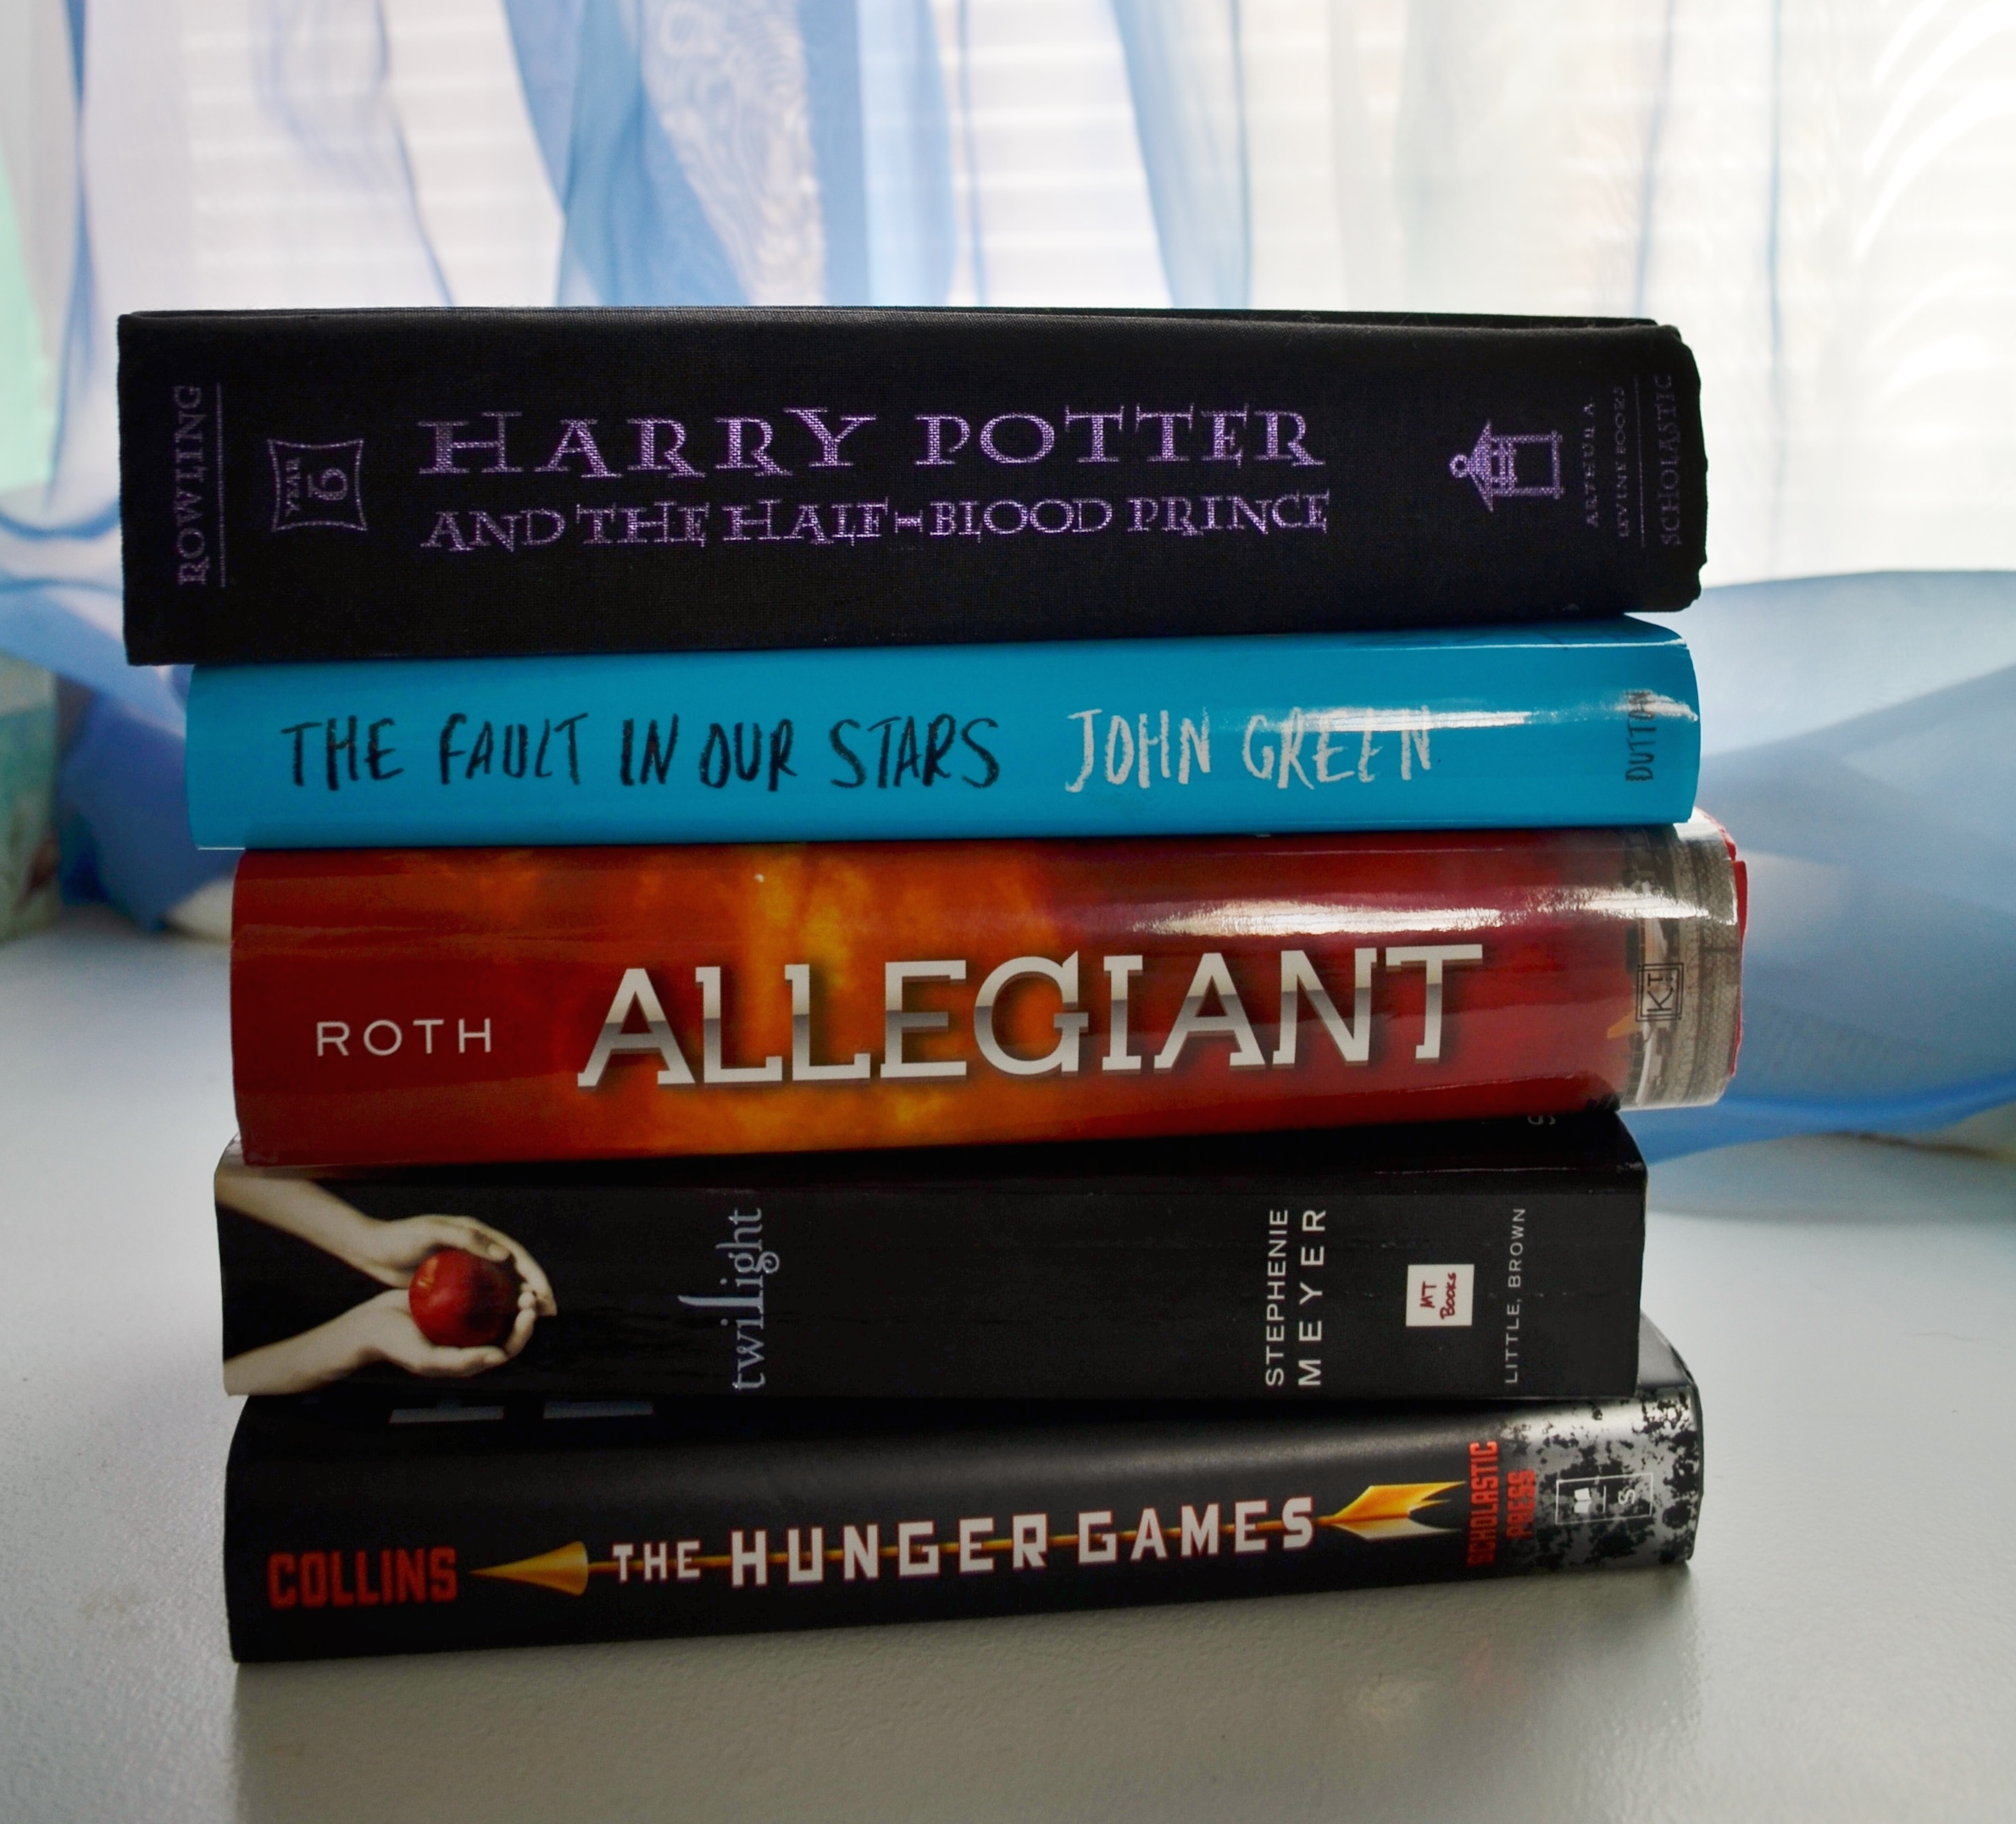 In defense of young adult literature